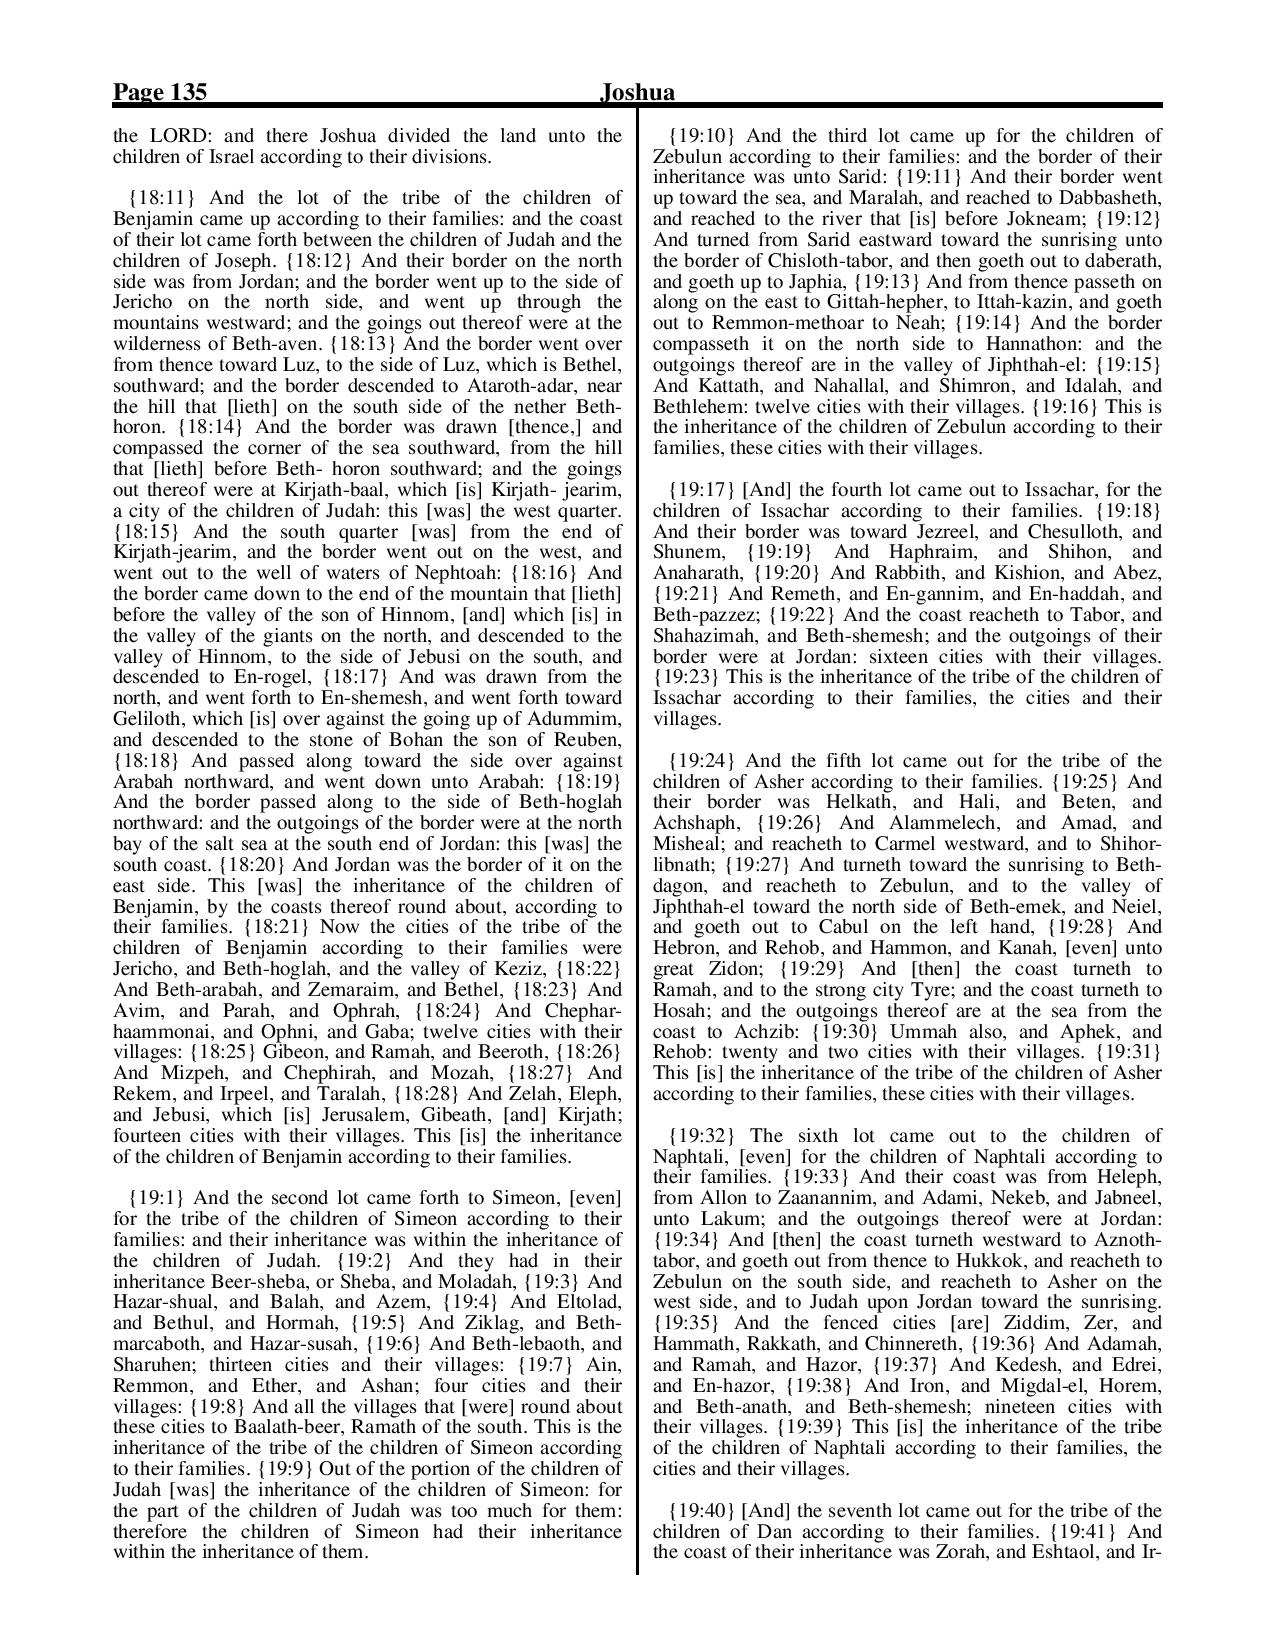 King-James-Bible-KJV-Bible-PDF-page-156